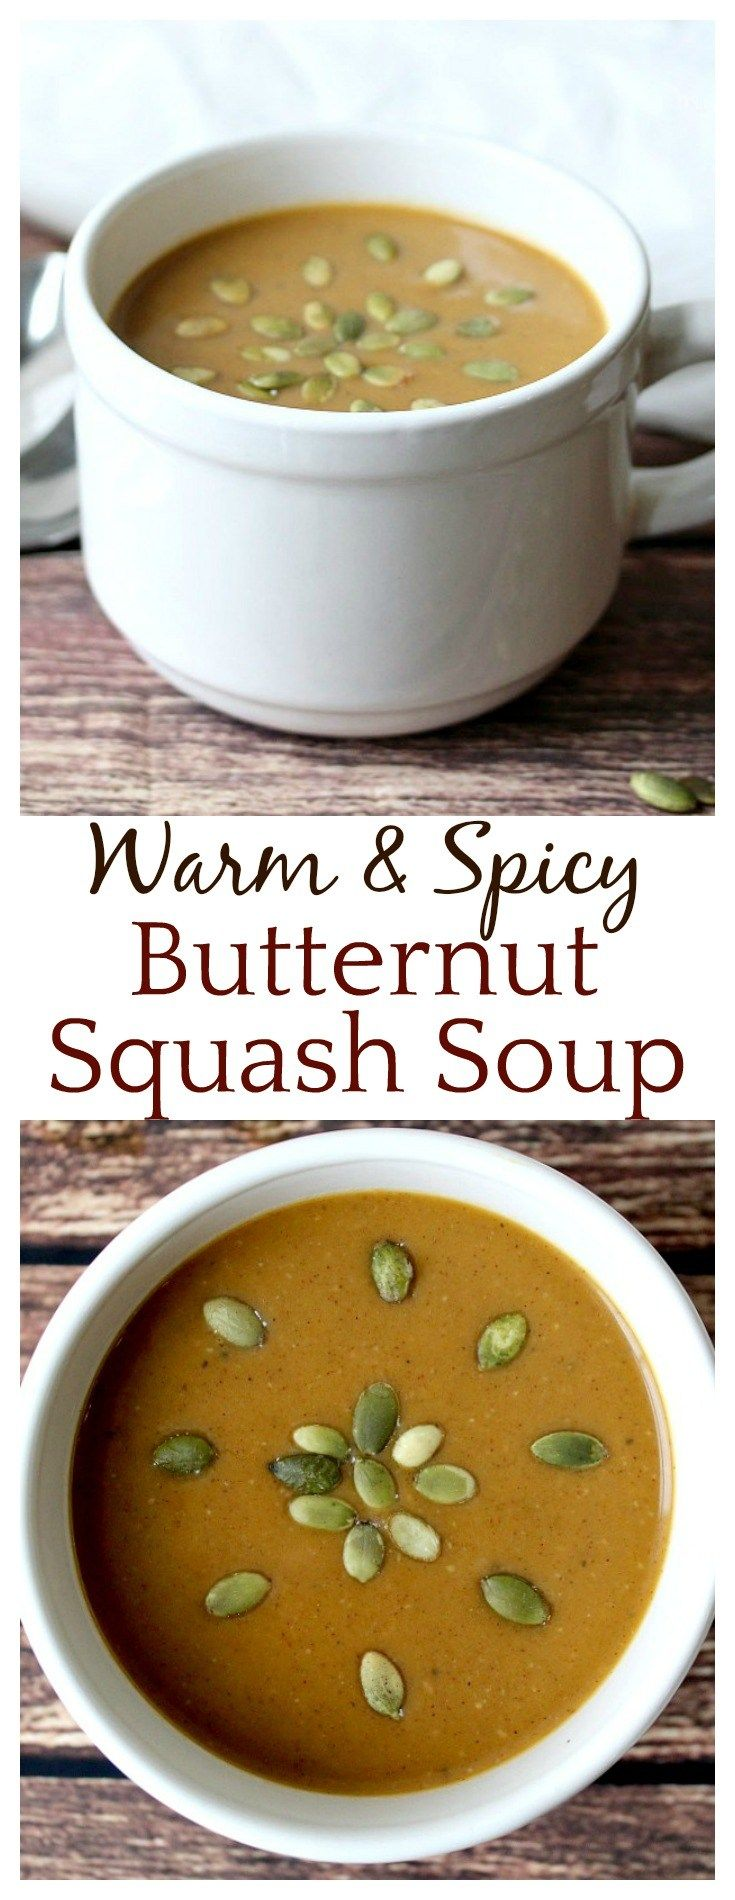 This pureed Warm & Spicy Butternut Squash Soup is the perfect Fall soup recipe, but it's perfect for all through Winter too! It's easy to make and kids even love the delicious, warm cinnamon and spice flavors!